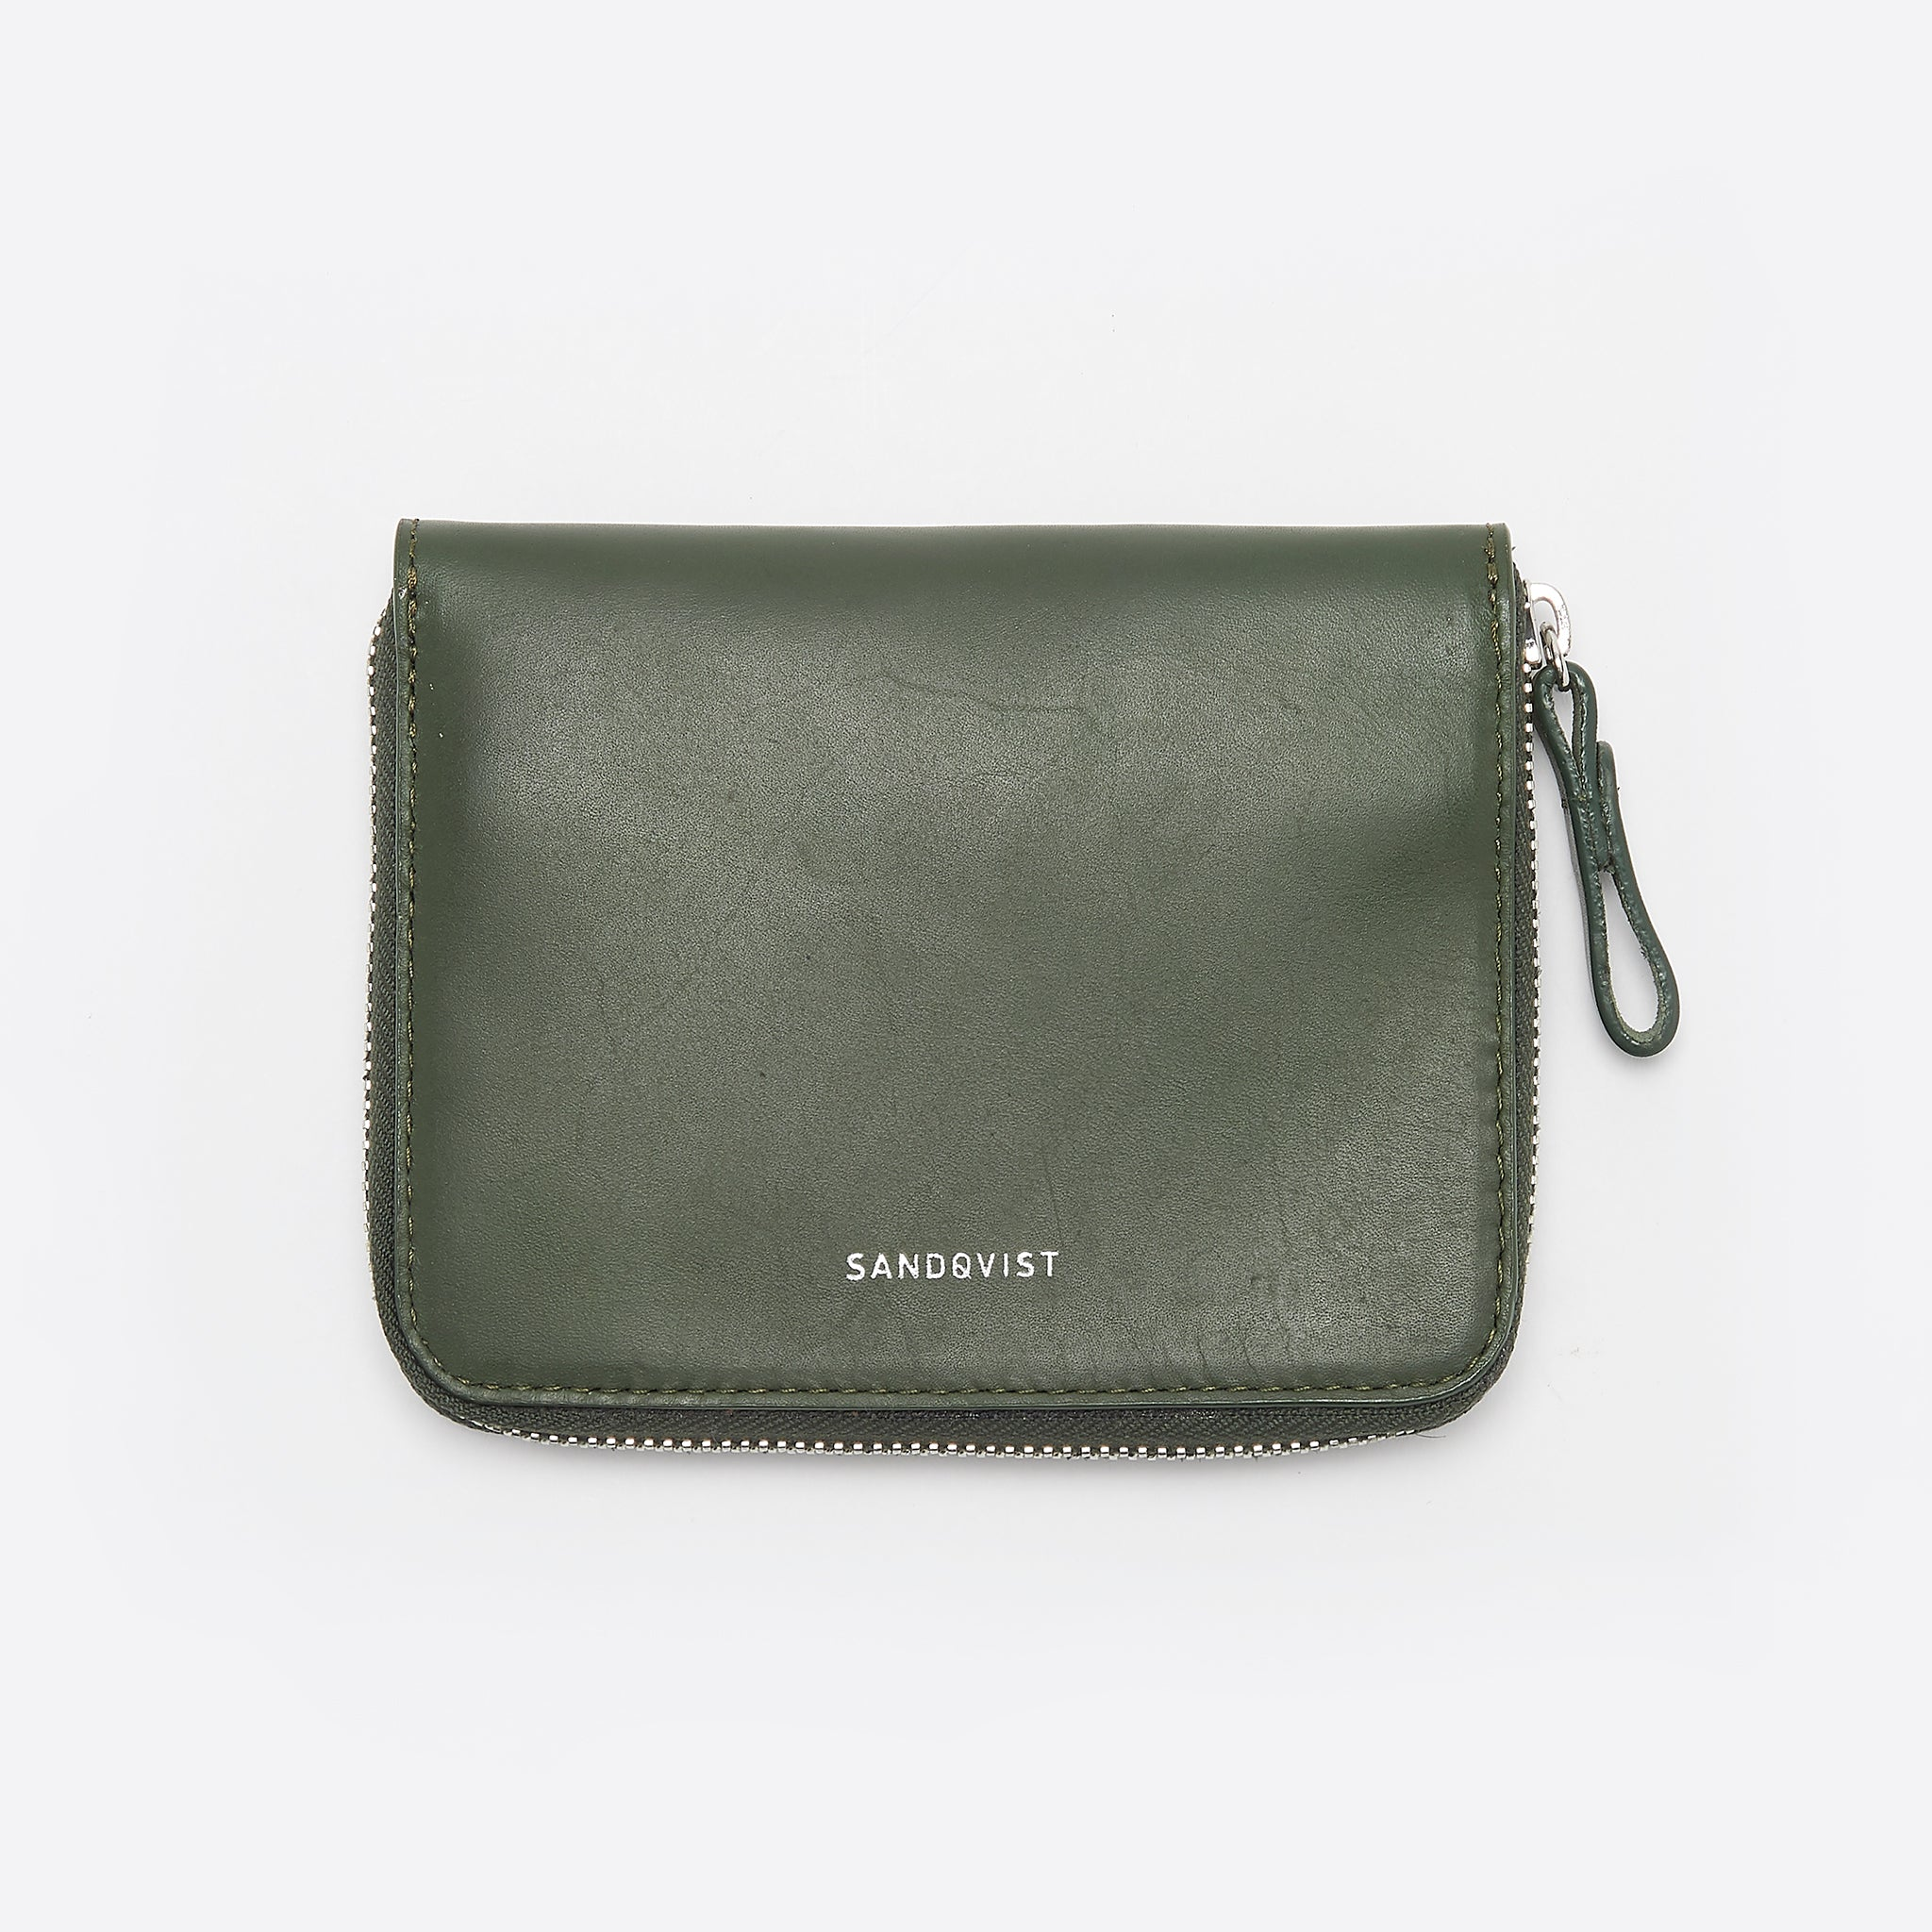 Sandqvist Amanda Wallet in Green